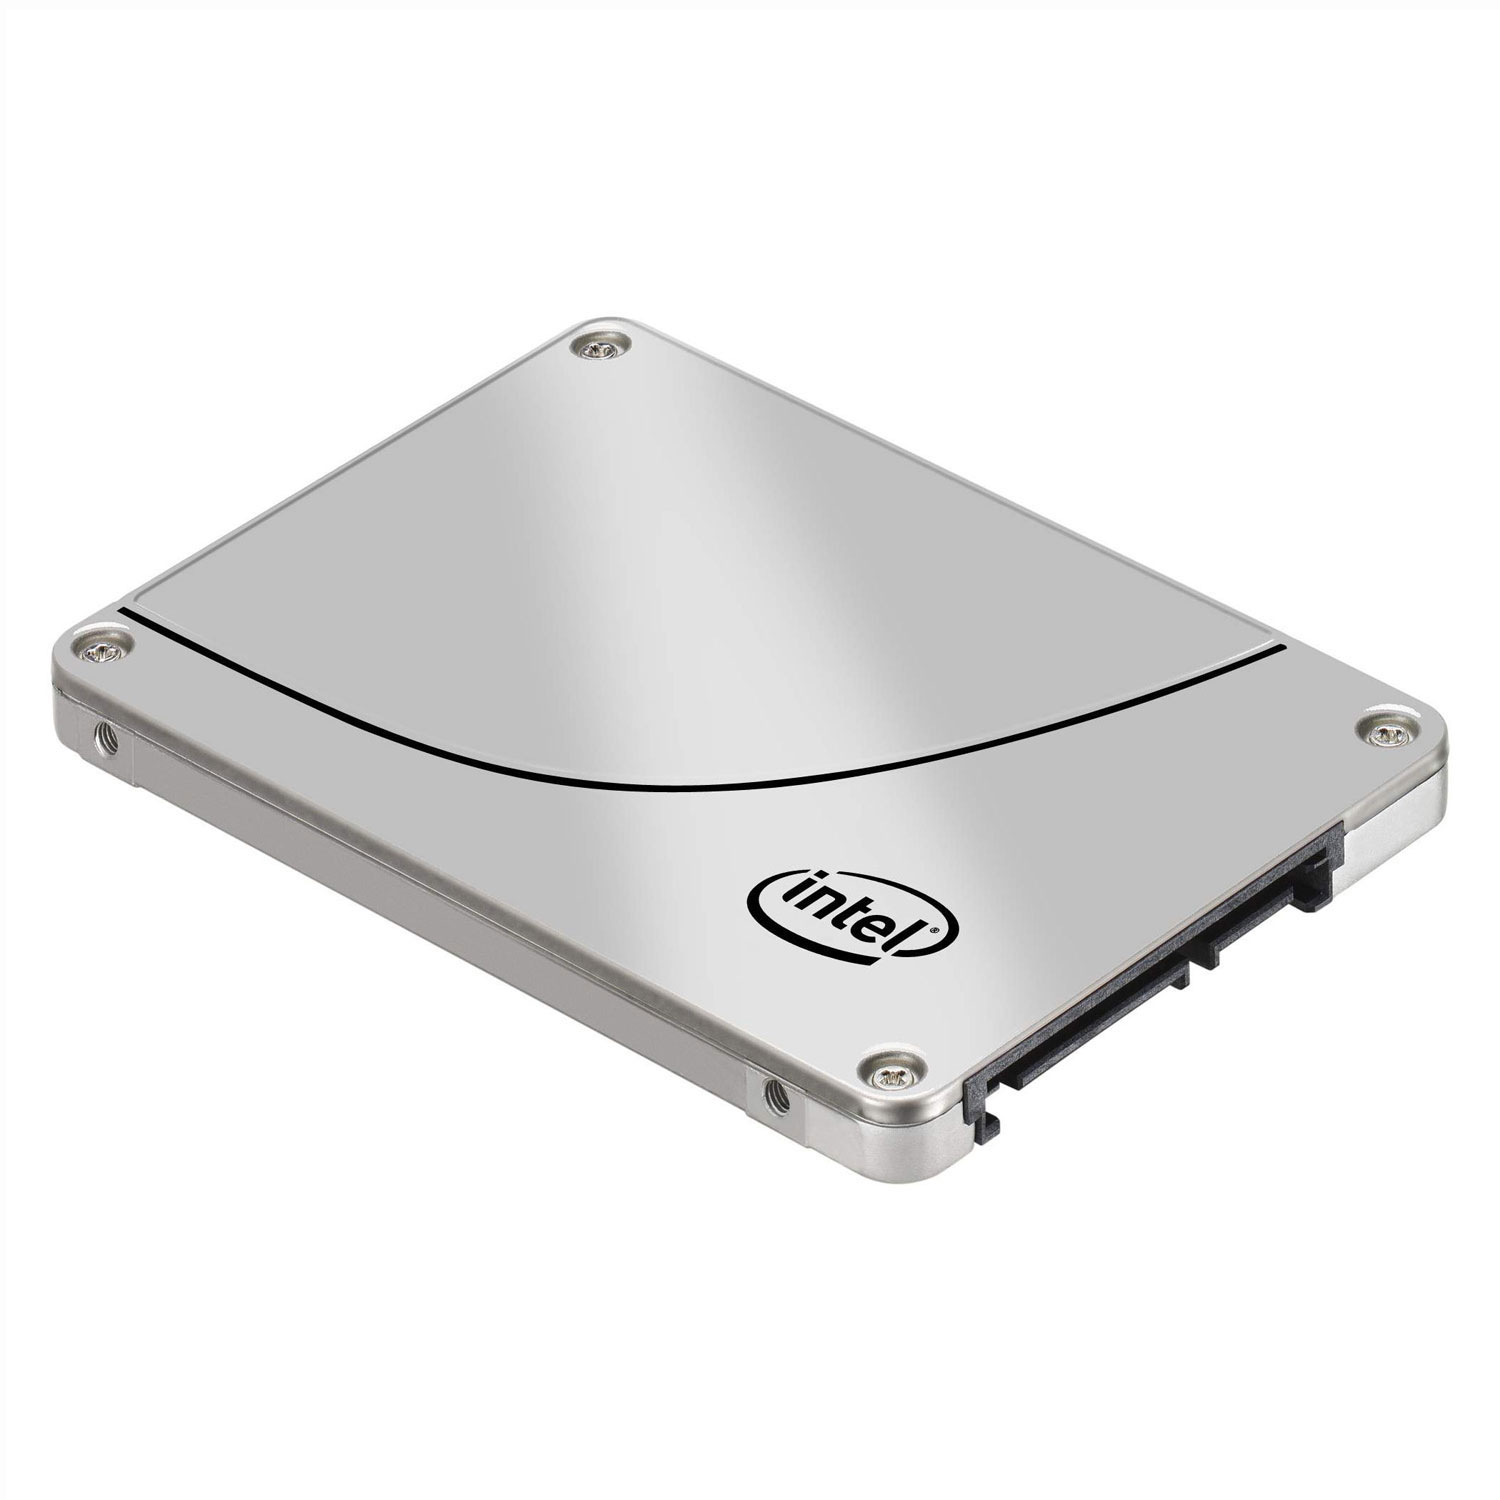 Intel® SSD DC S3510 Series (120GB, 2.5in, SATA 6GB/s, 16nm, MLC) 7mm, Single